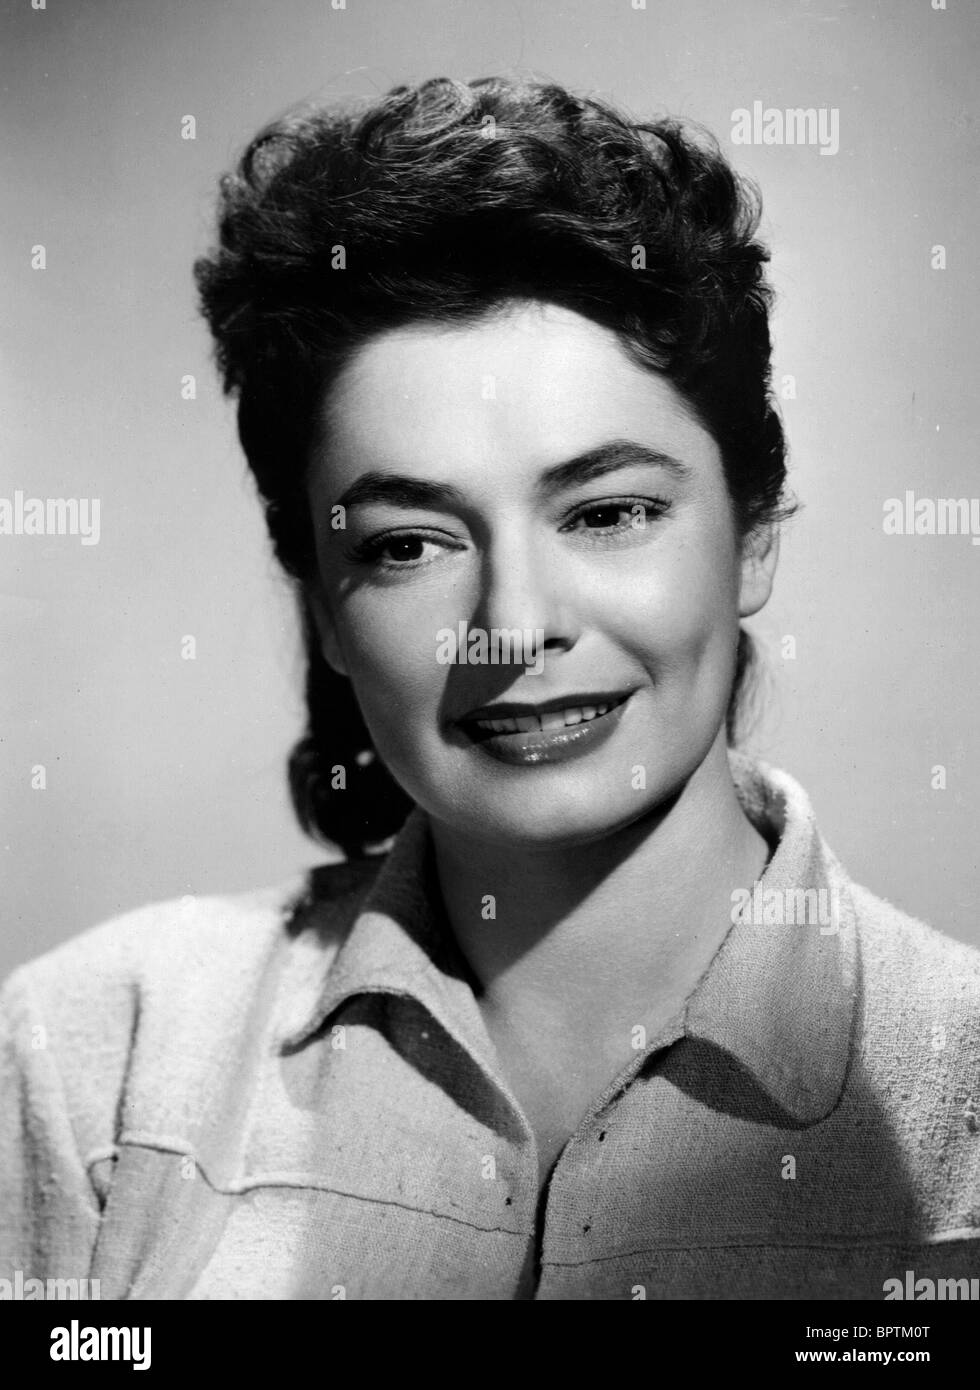 RUTH ROMAN ACTRESS (1956) - Stock Image